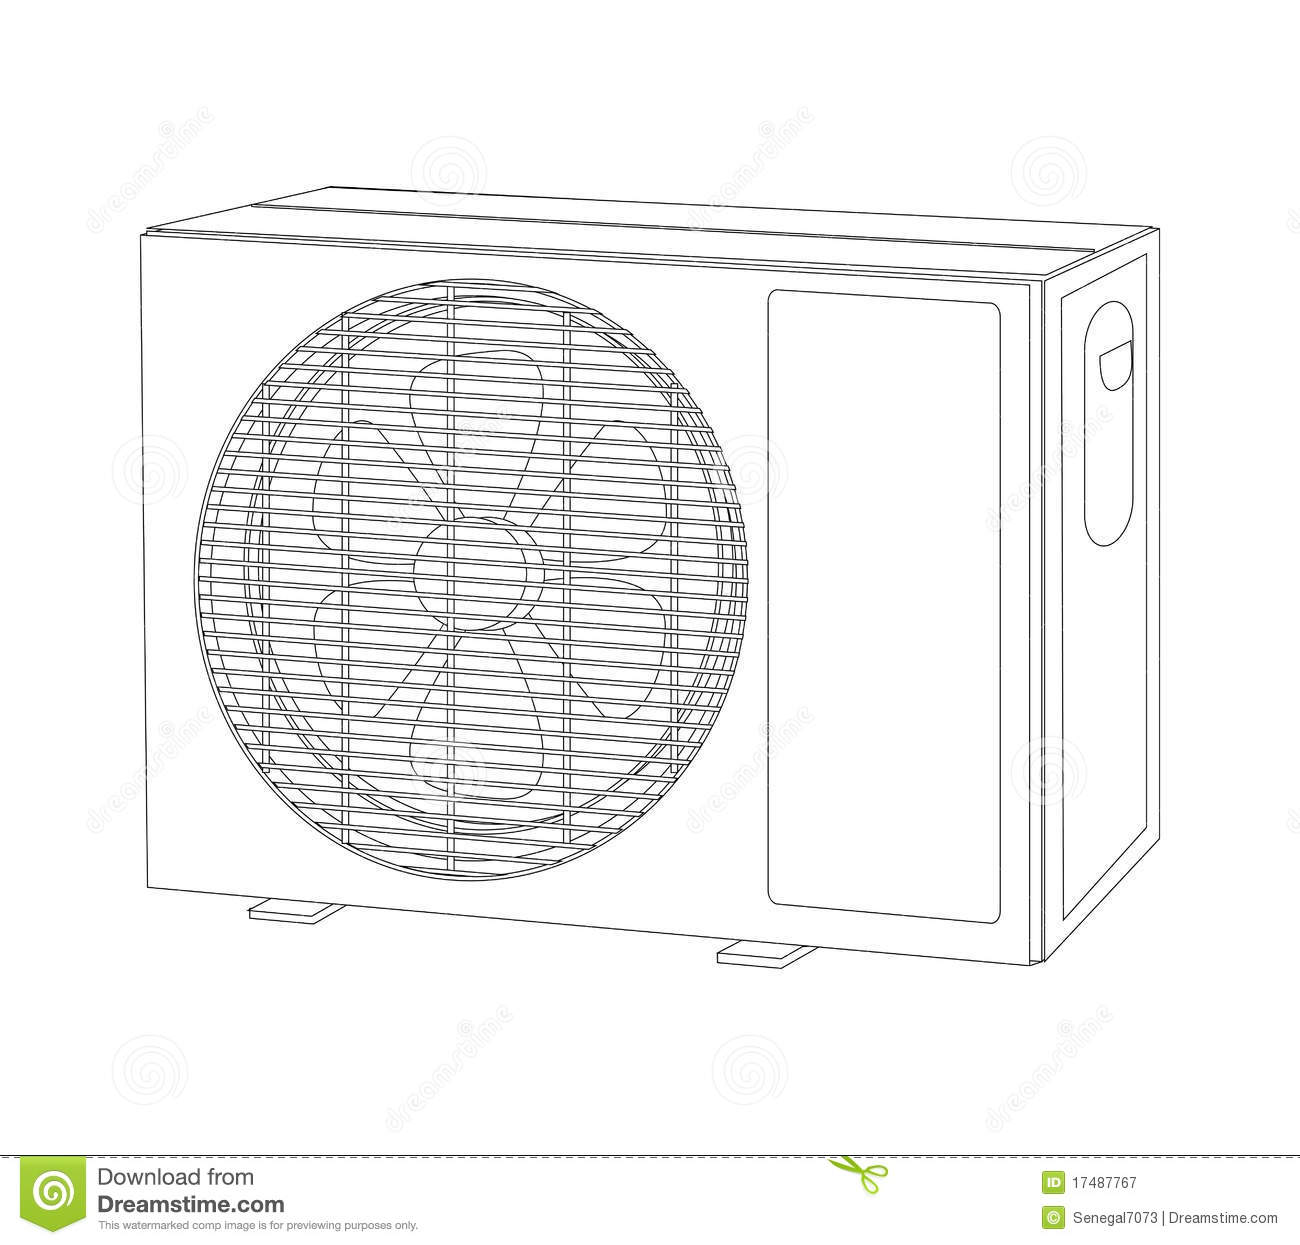 Fan Blade Outline : Device air cond outlet outline stock illustration